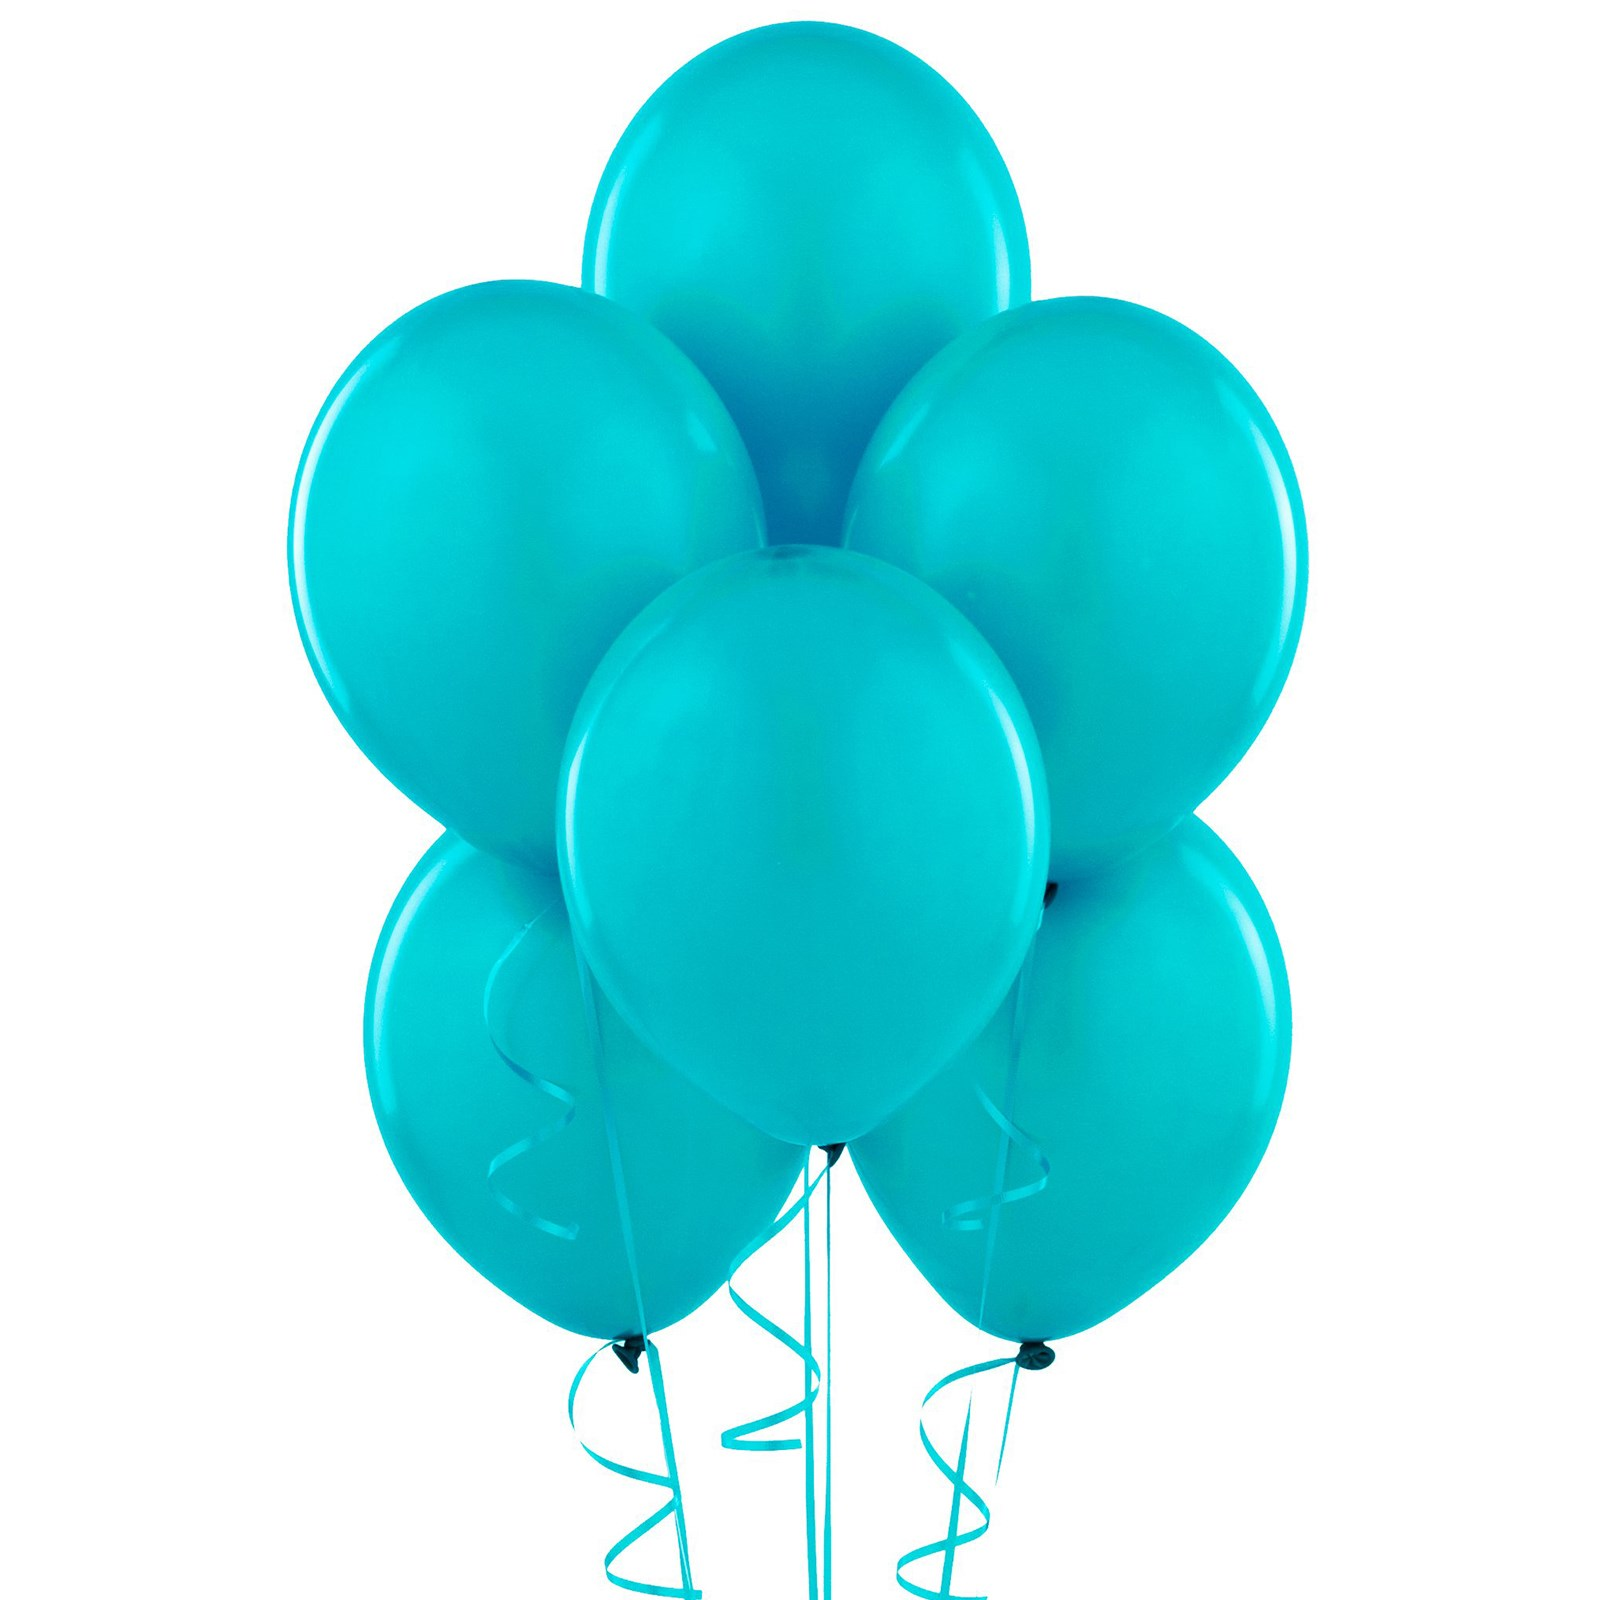 Green and blue balloons - Bermuda Blue Turquoise Matte Balloons